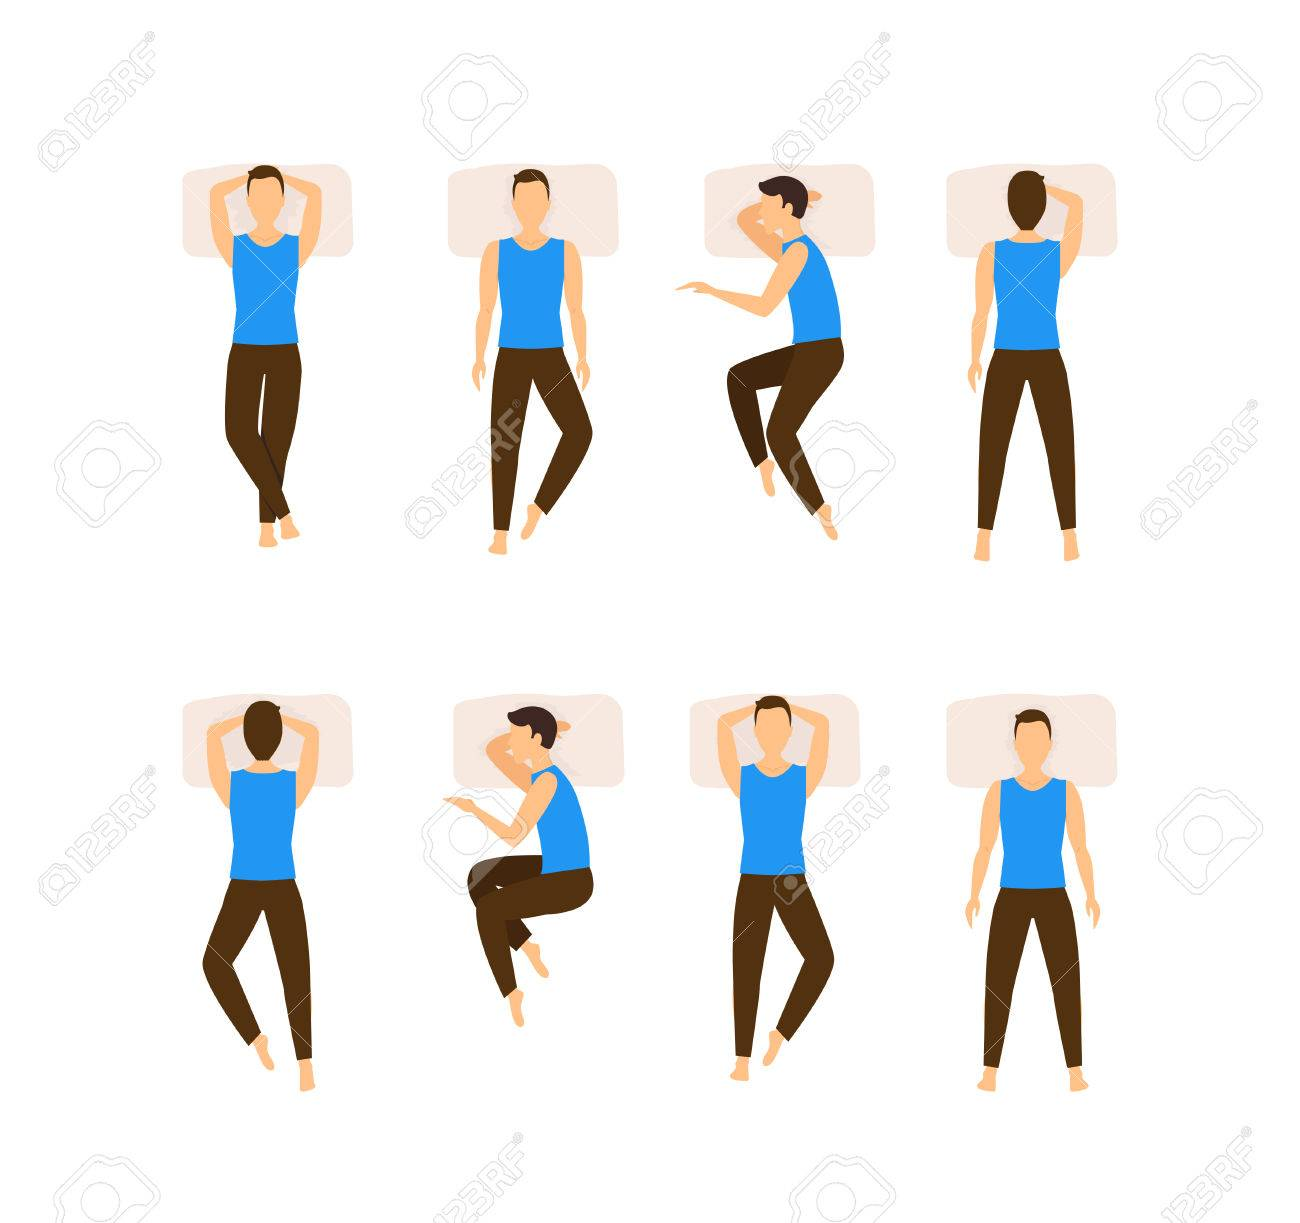 Different Sleeping Poses Set. Top View Man. Flat Design Style. - 64571874